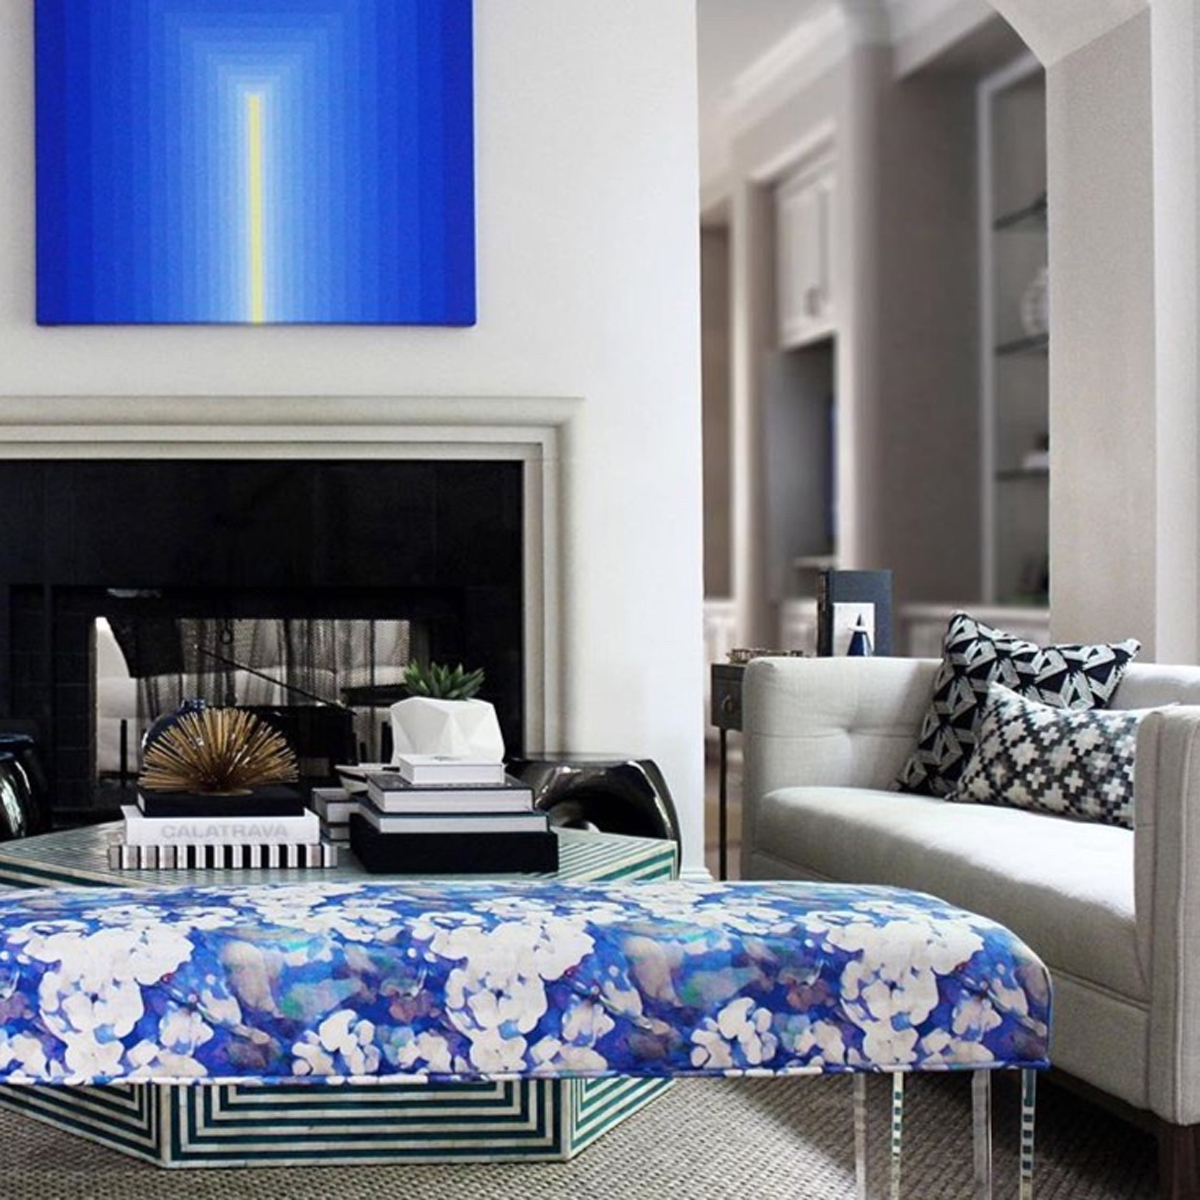 A commissioned piece through  Dimmitt Contemporary Art  is included in this Houston residential space designed by  Stone Textile Studio  of Austin, TX. What a stunning room!